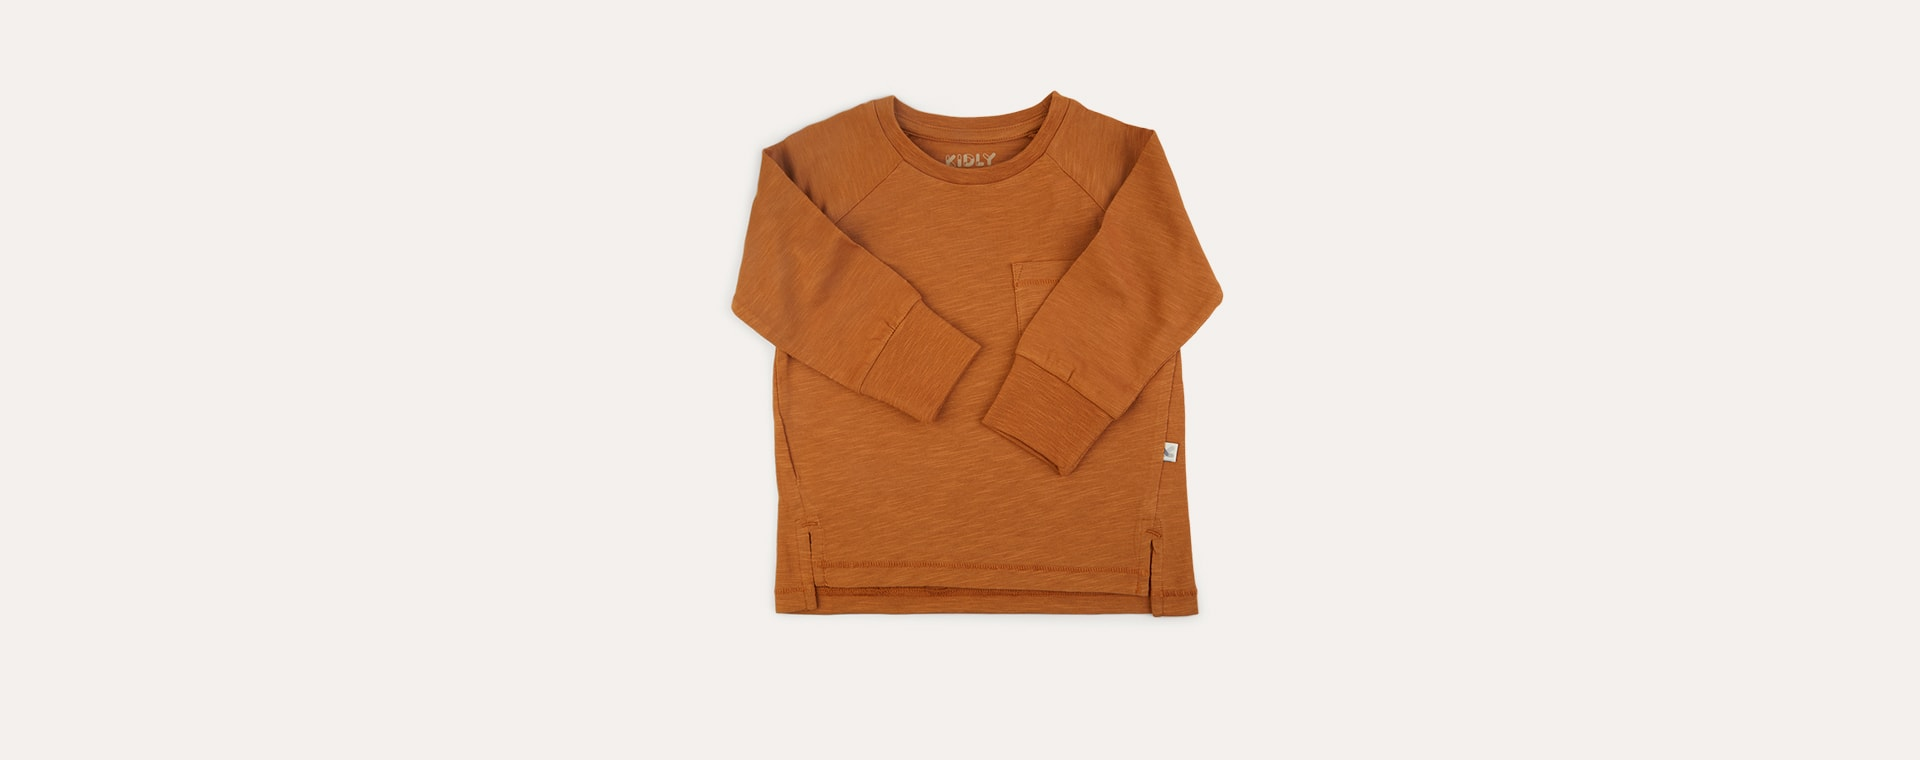 Ginger KIDLY Label Perfect Long Sleeve Tee